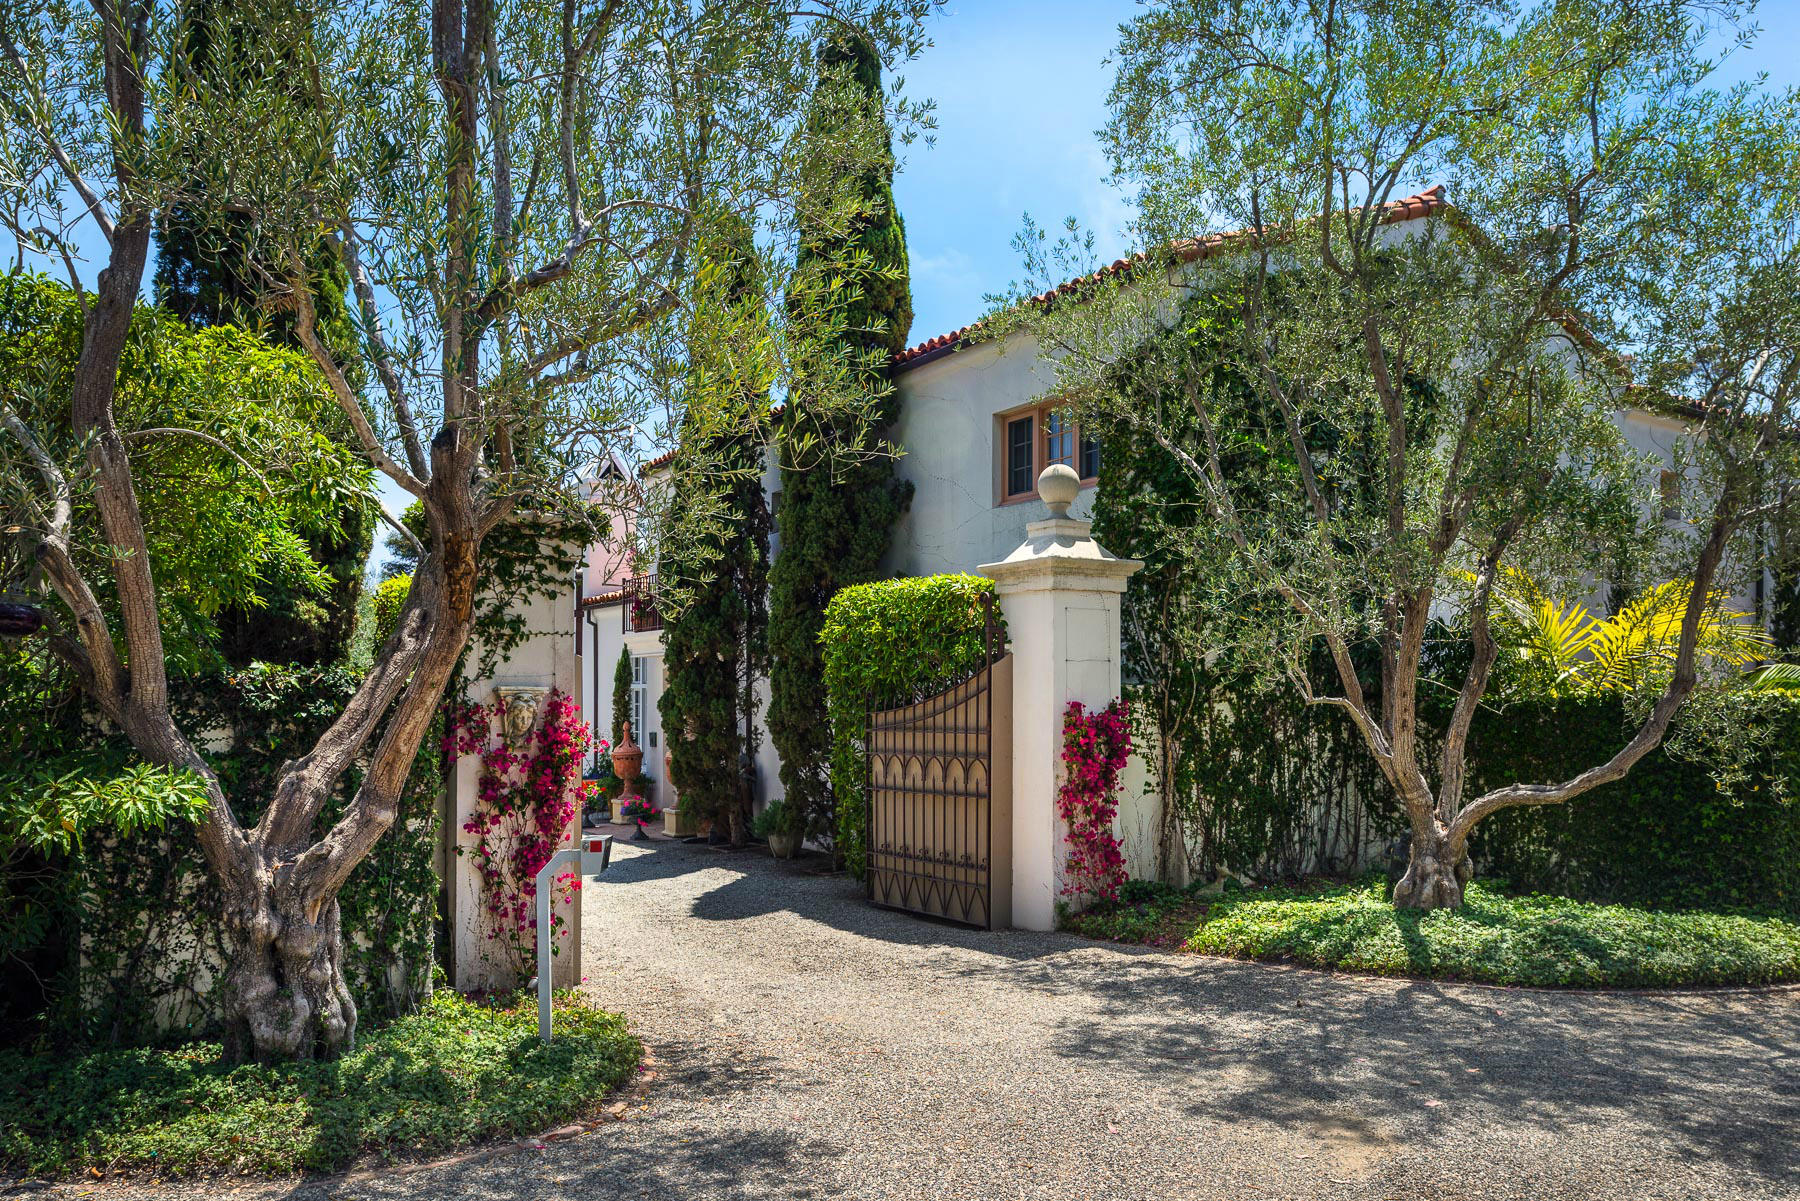 Property photo for 185 Middle Rd Montecito, California 93108 - 15-2337